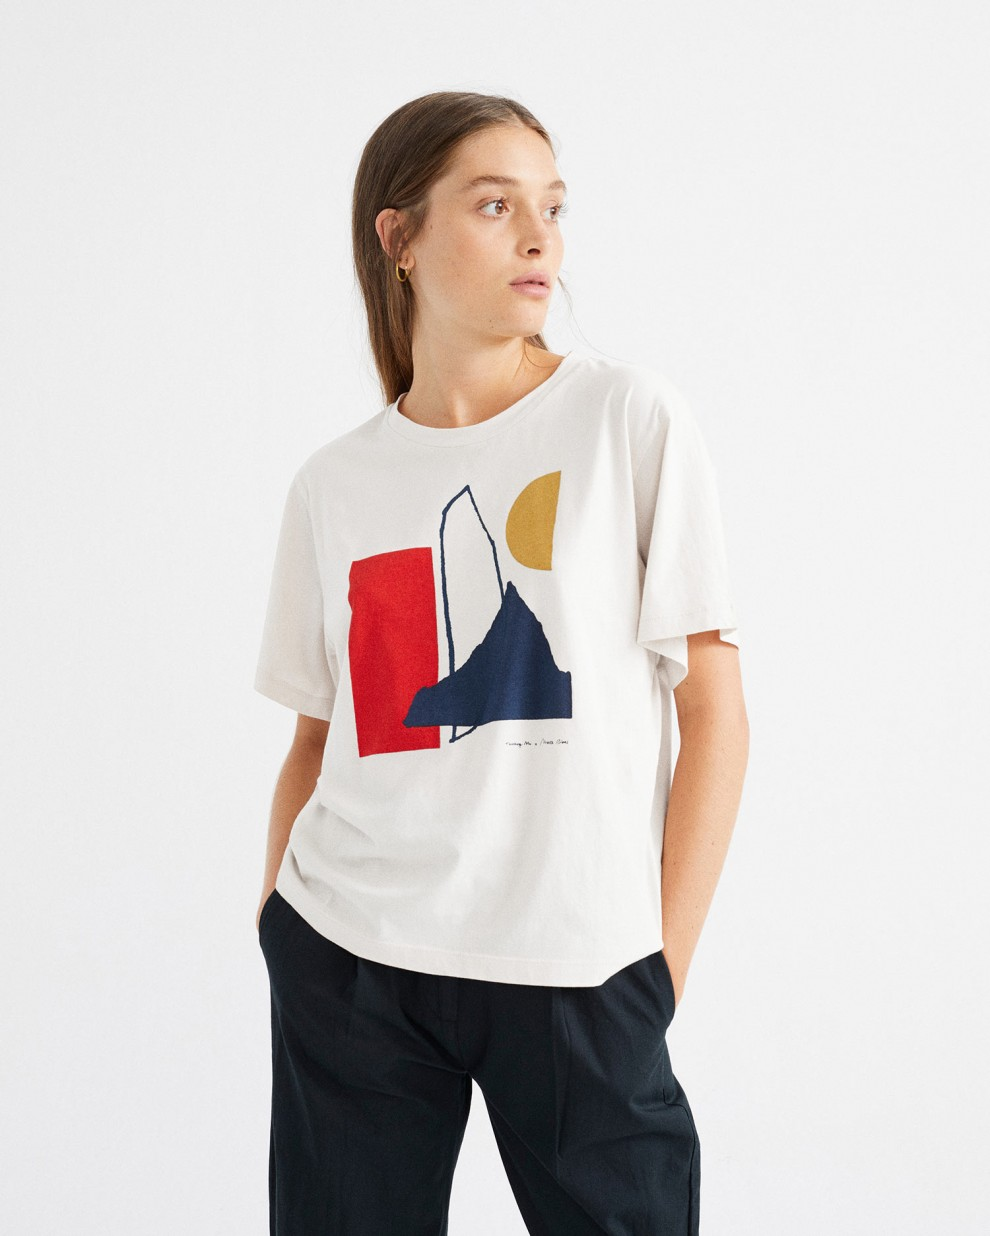 Camiseta abstract blanco